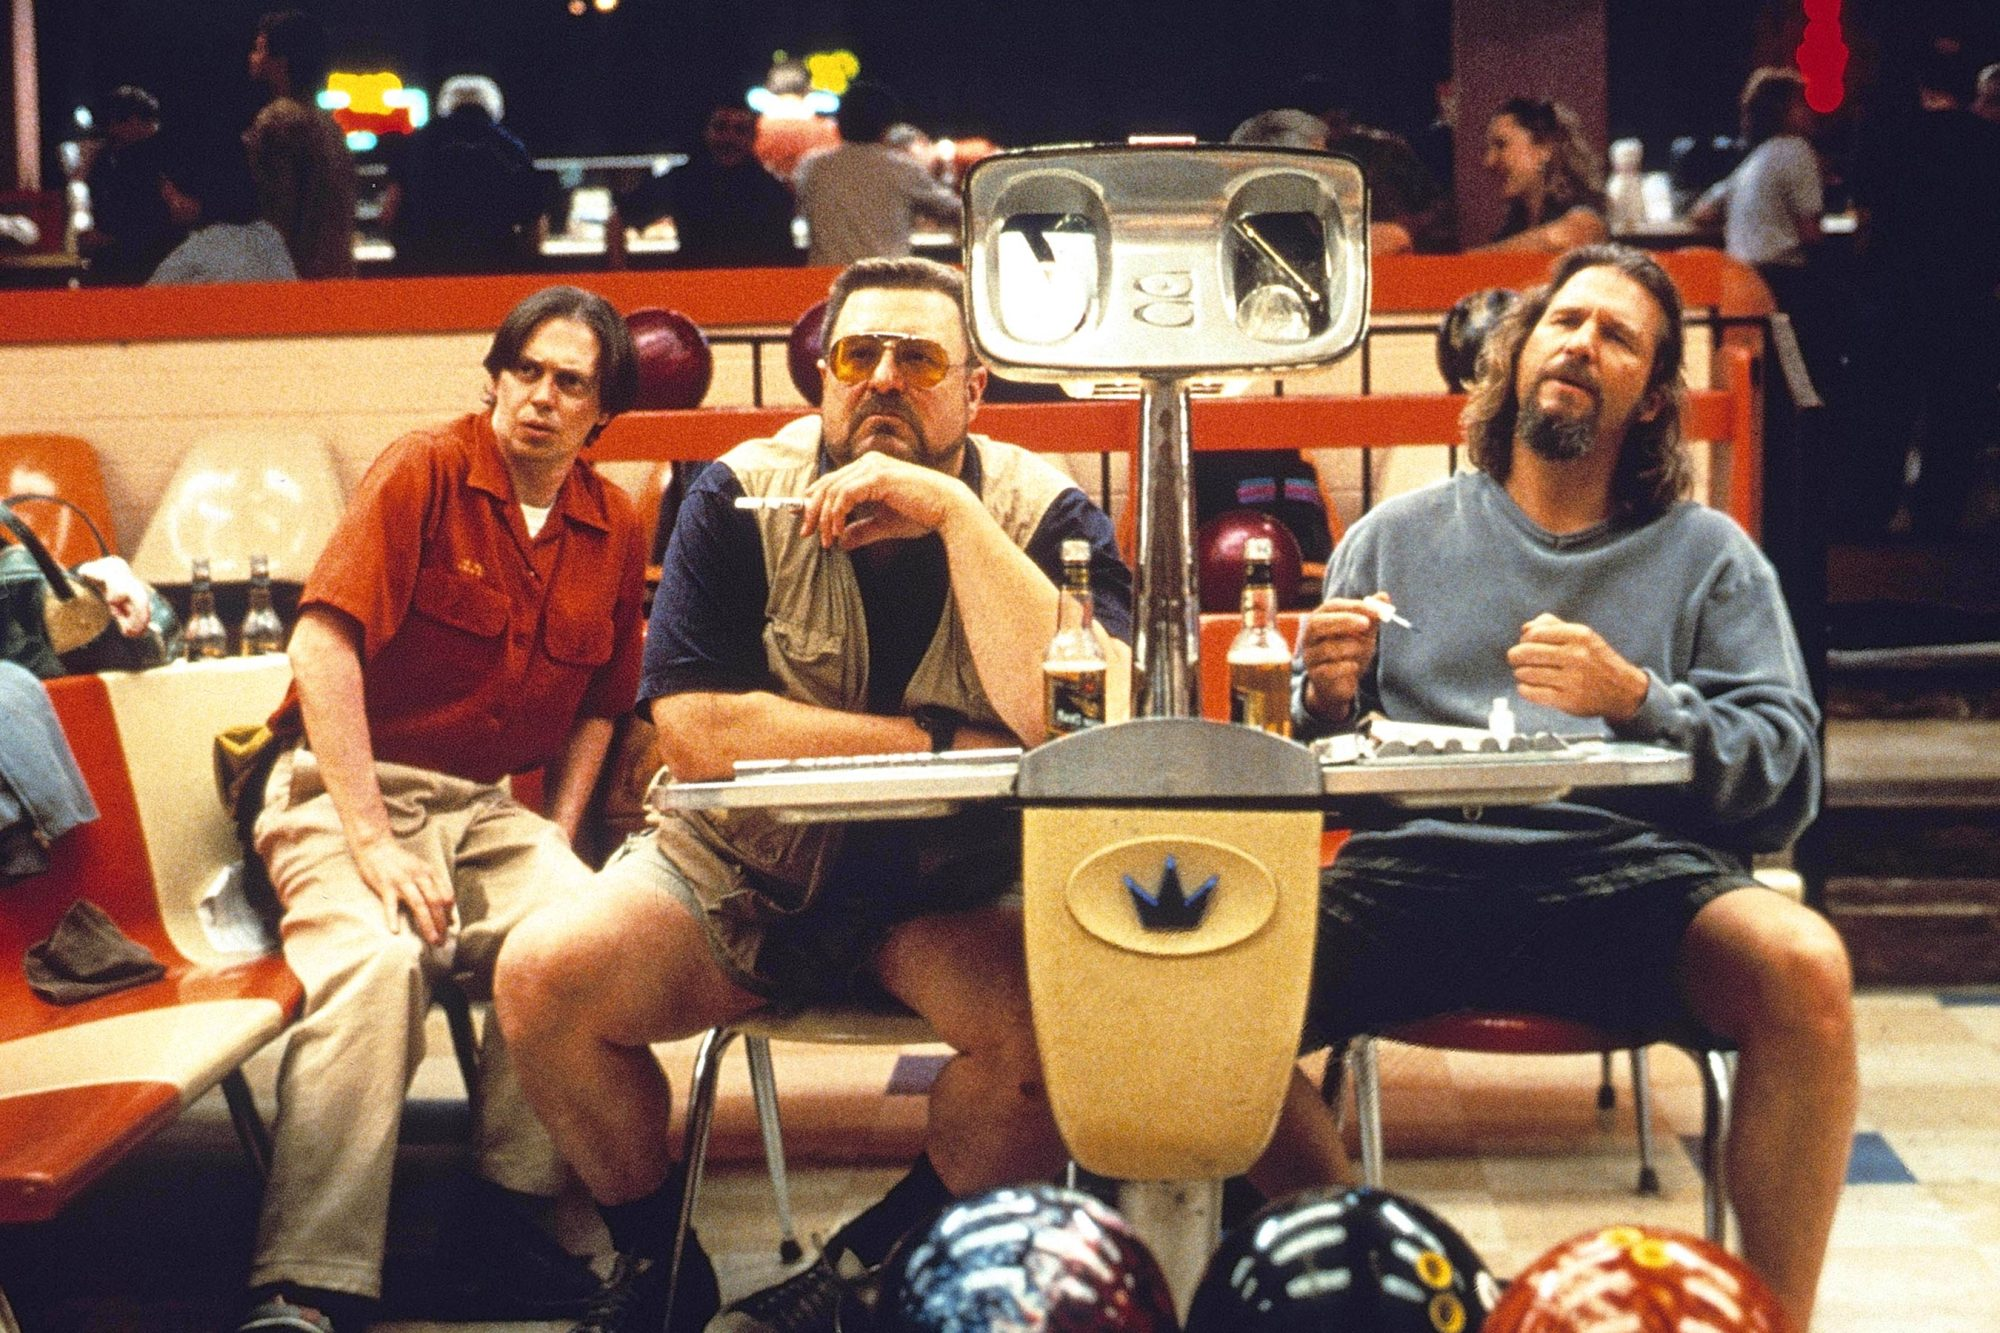 The Big Lebowski - 1998